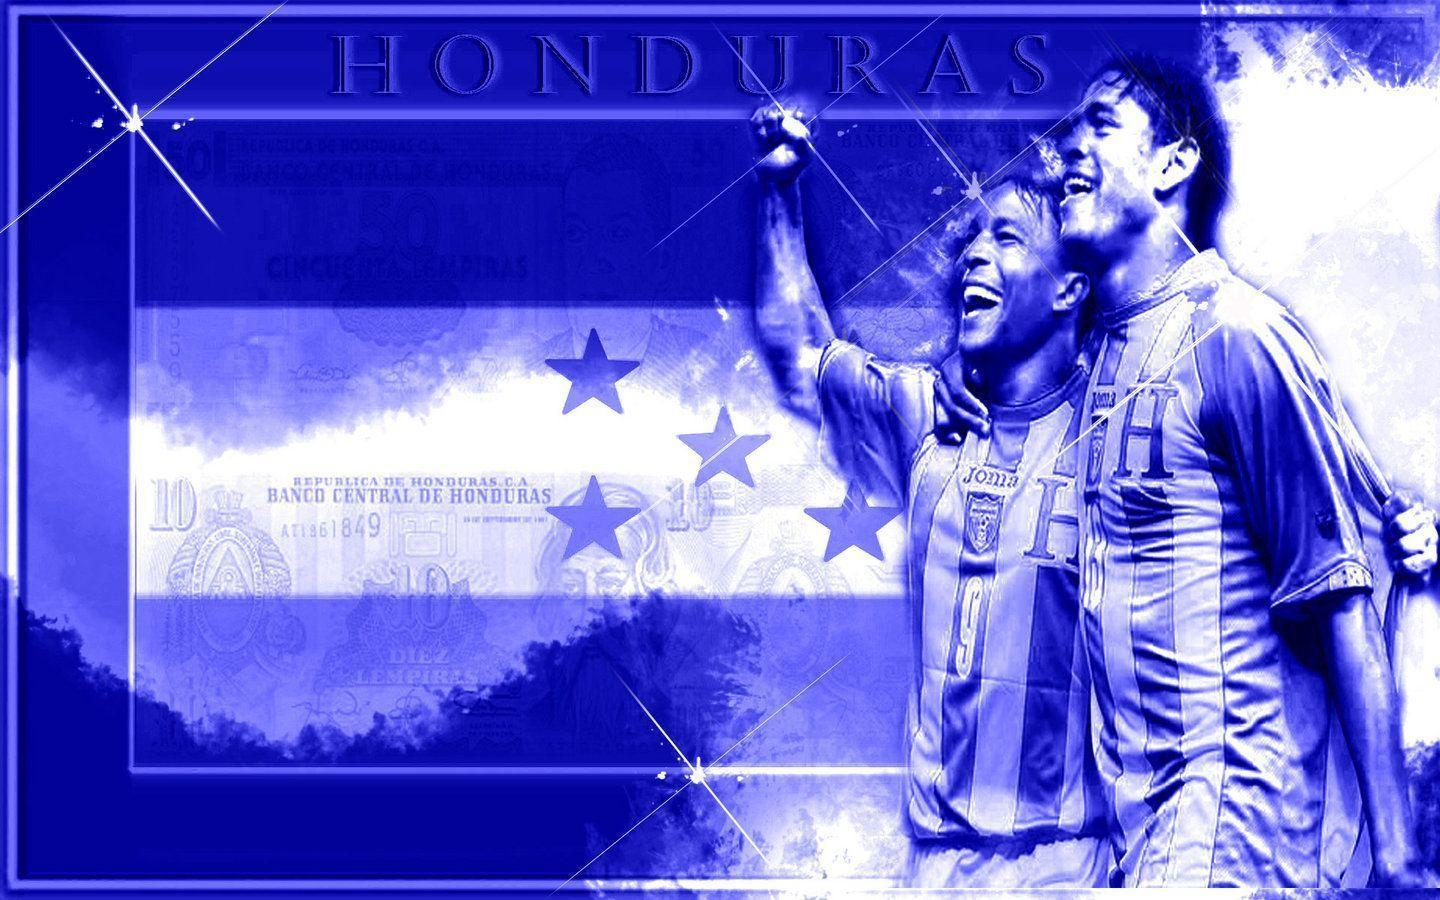 honduras wallpaper, carlos pavon y carlos costly, honduras photo